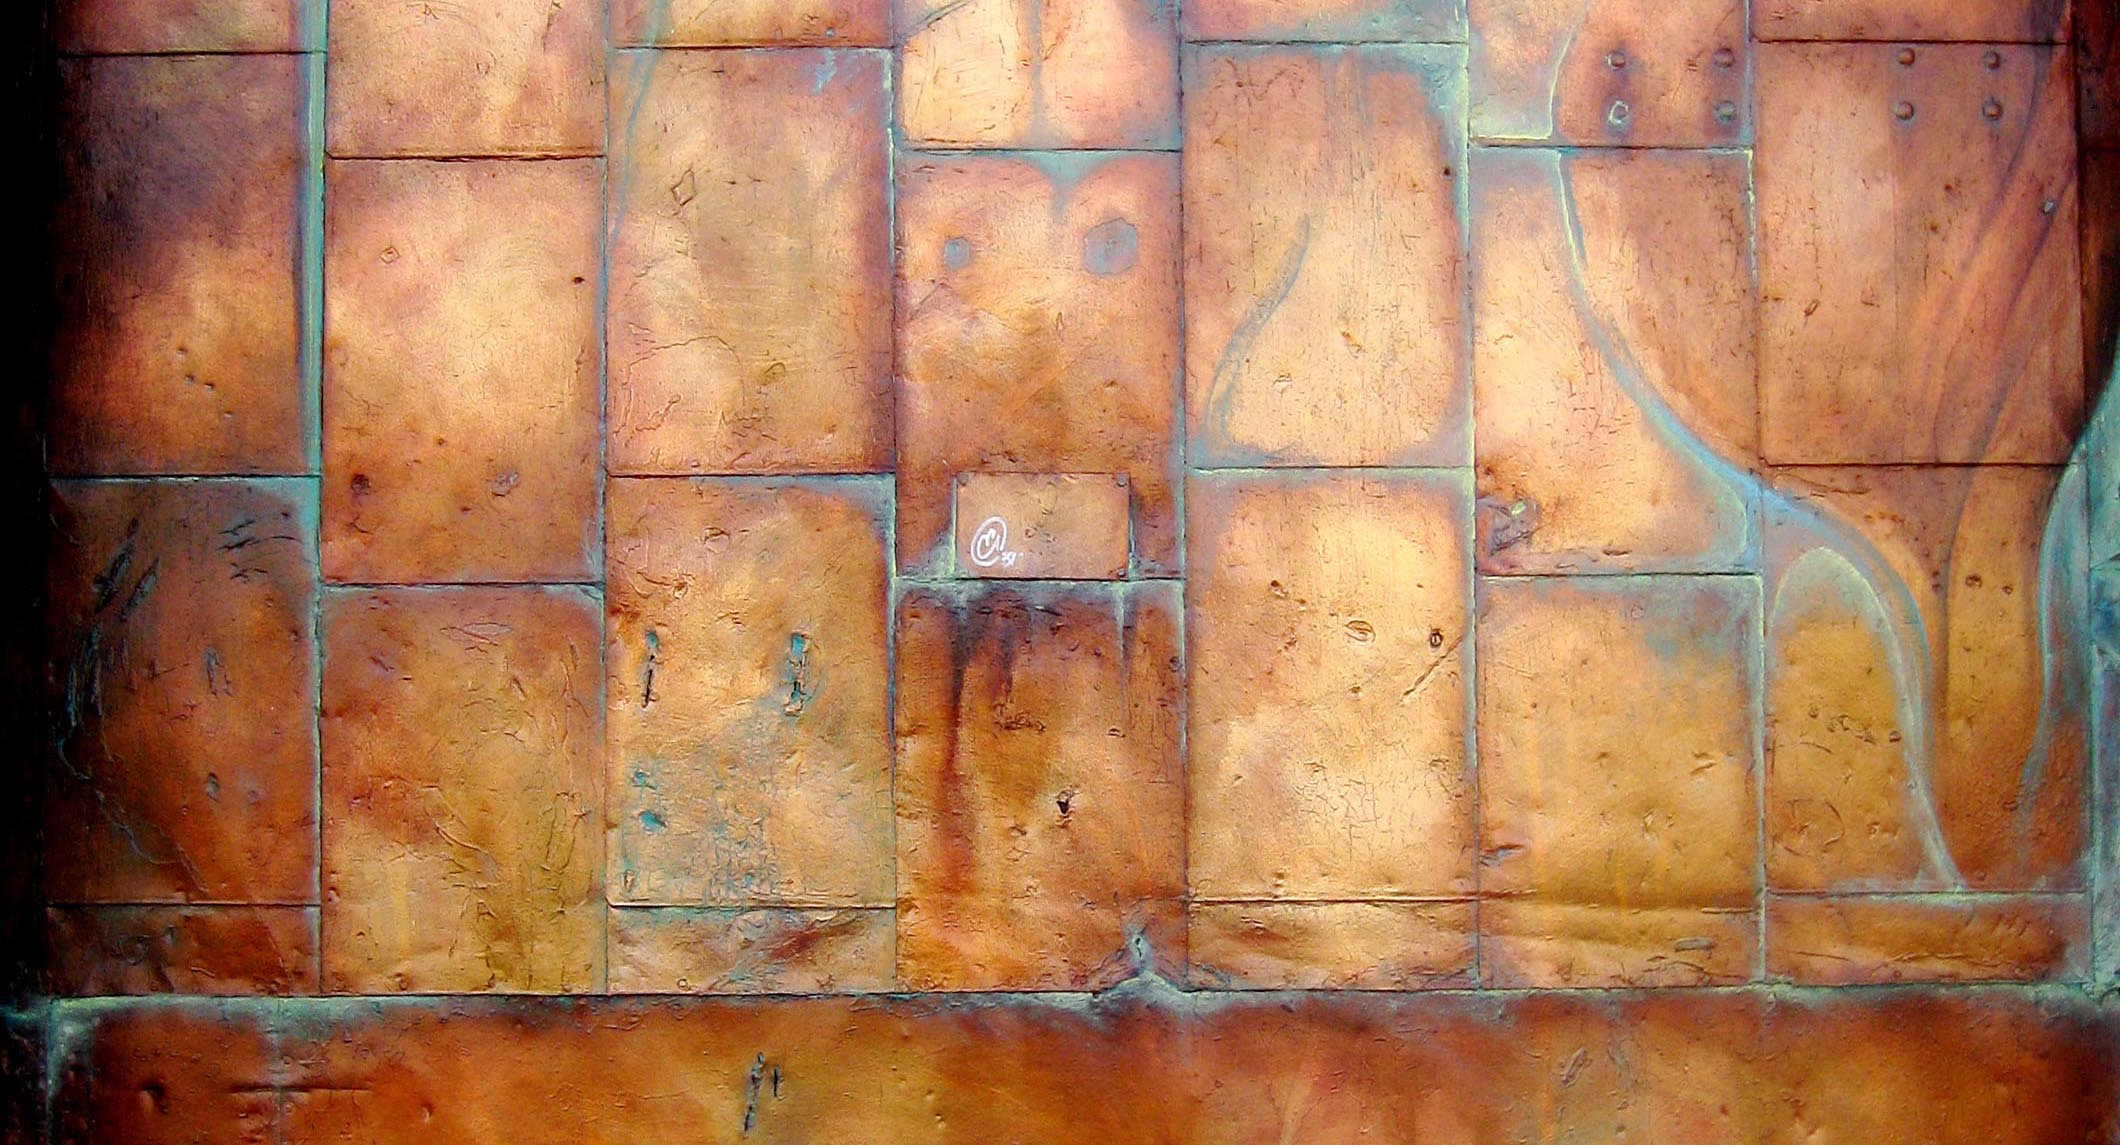 Copper Wall Paneling : Artist ethan william mason oils pastels charcoal